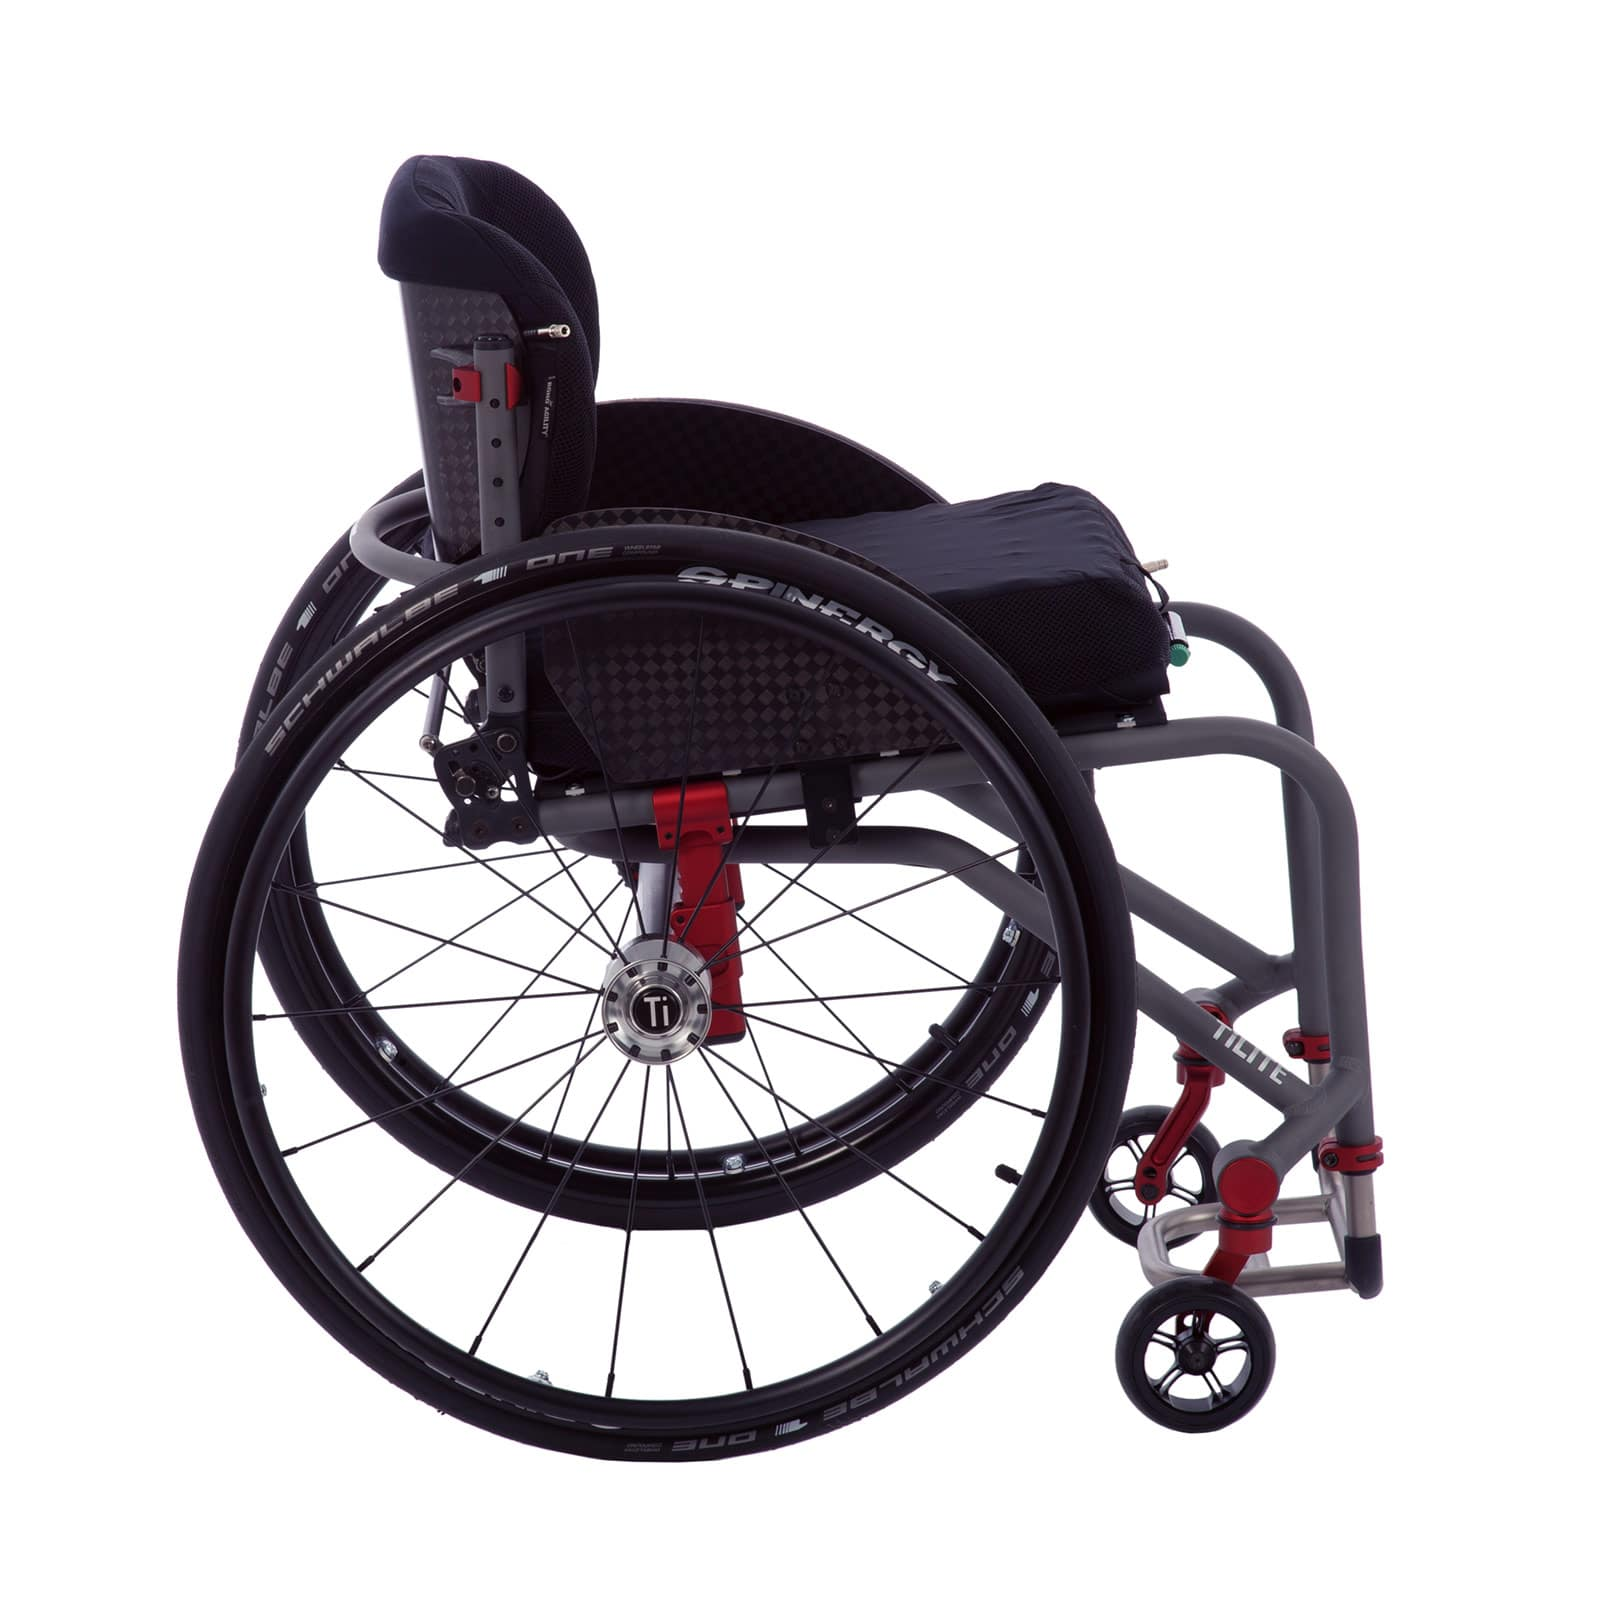 TiLite Aero T Aluminum Wheelchair FREE SHIPPING How iRoll Sports